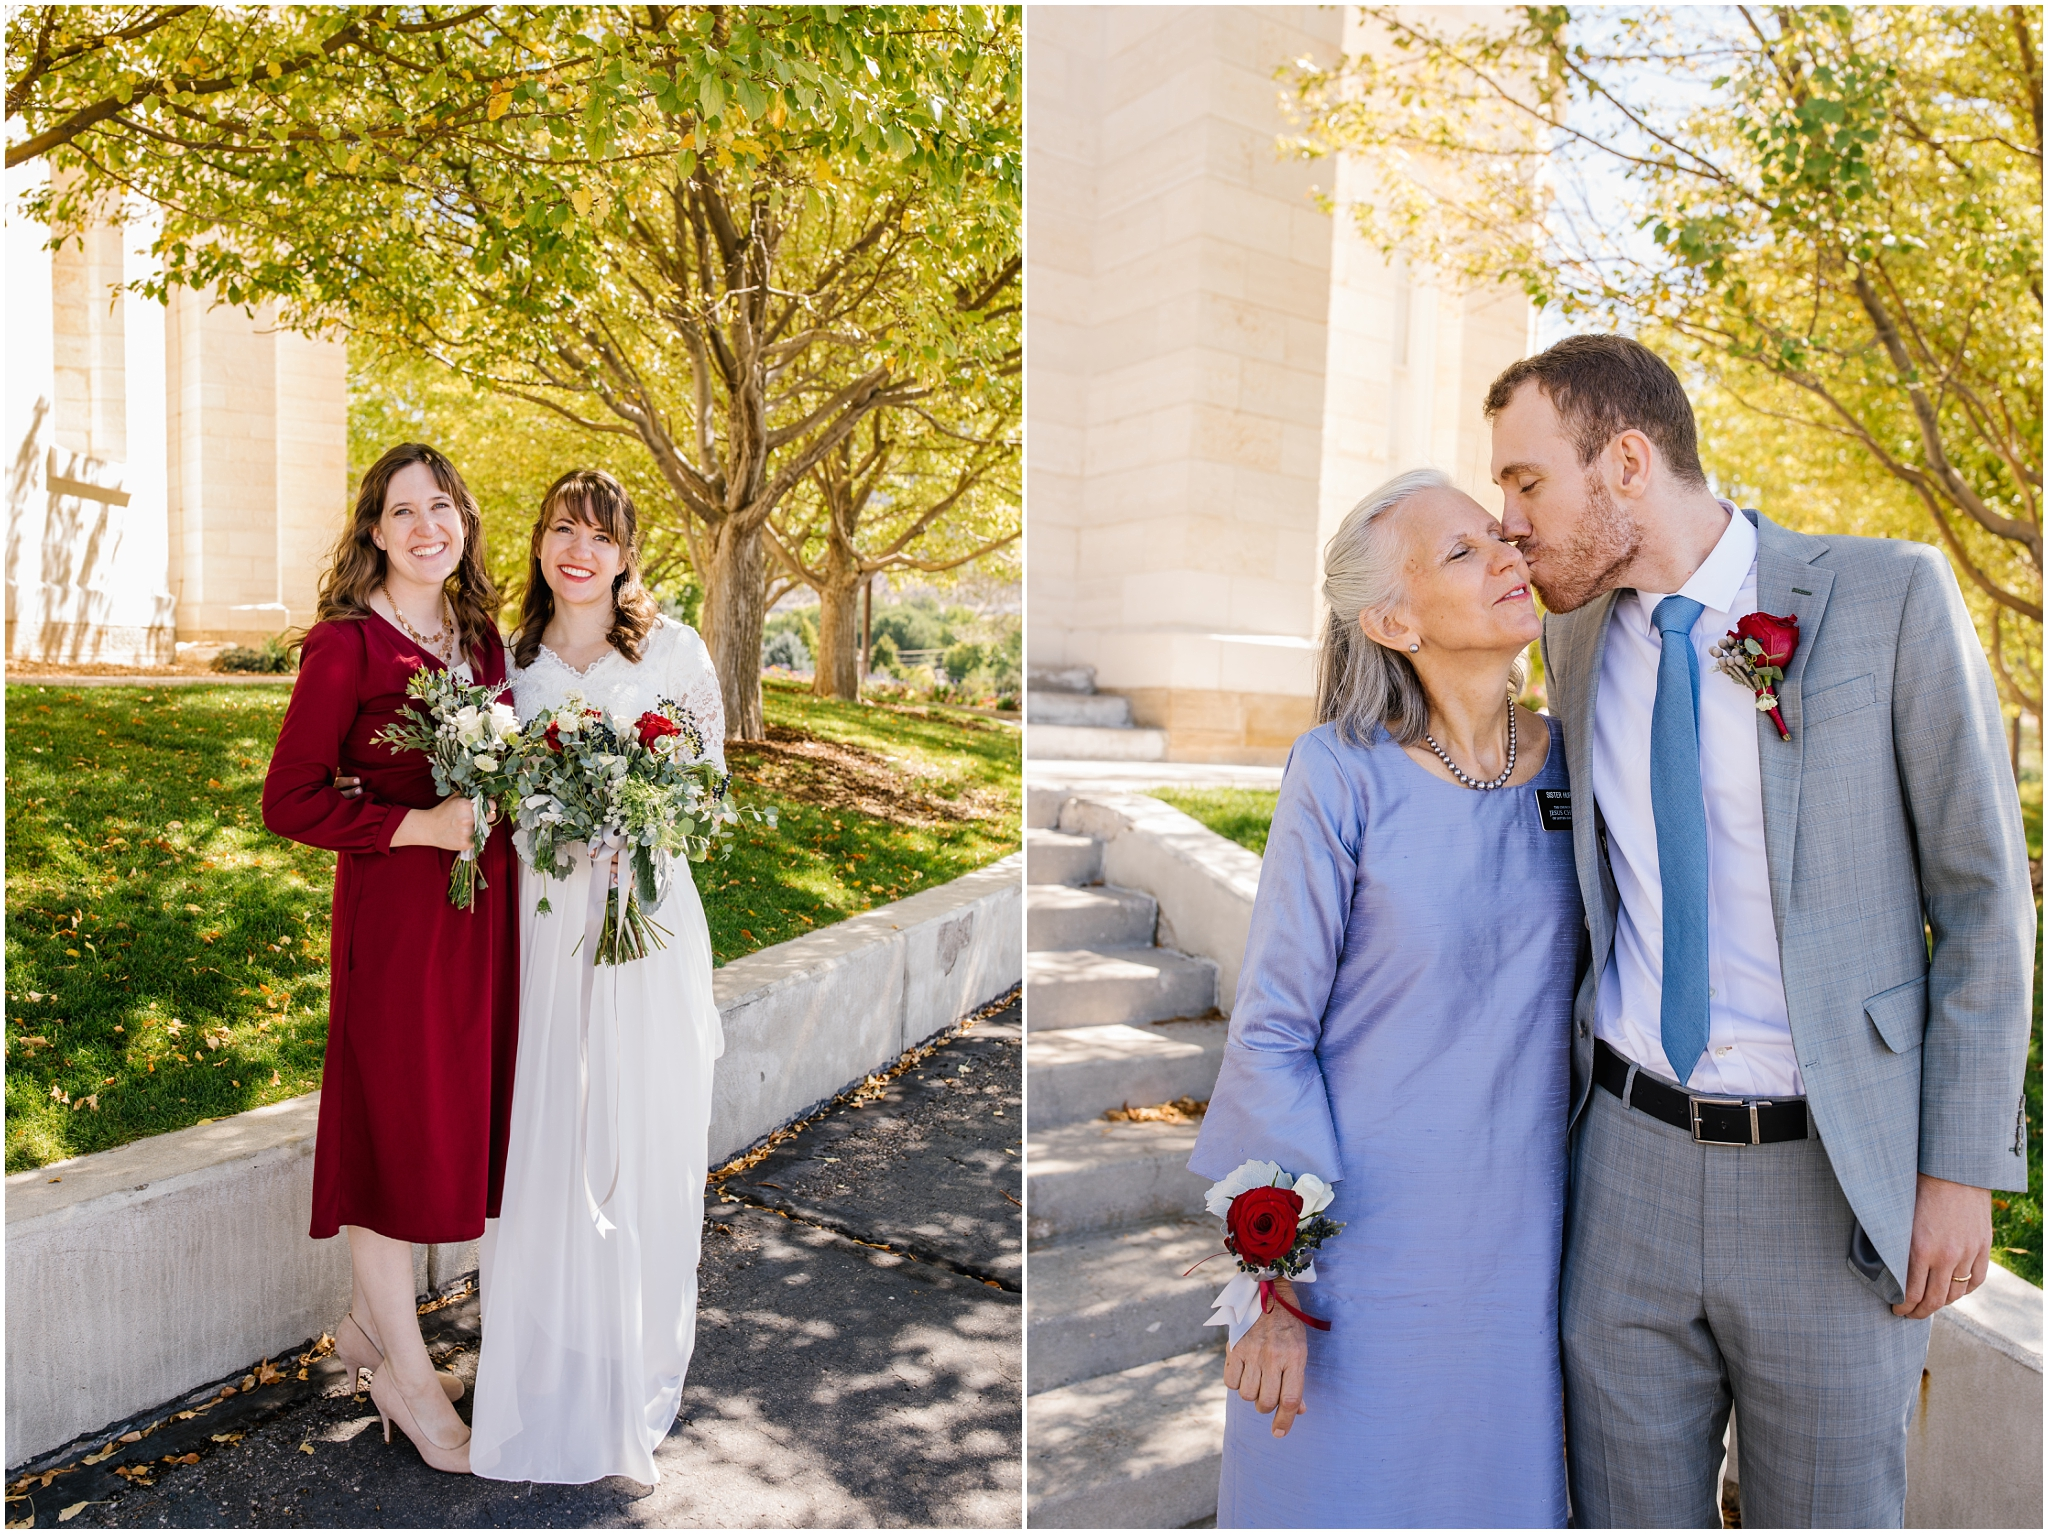 BrynneWinston-66_Lizzie-B-Imagery-Utah-Wedding-Photographer-Utah-County-Manti-Temple.jpg